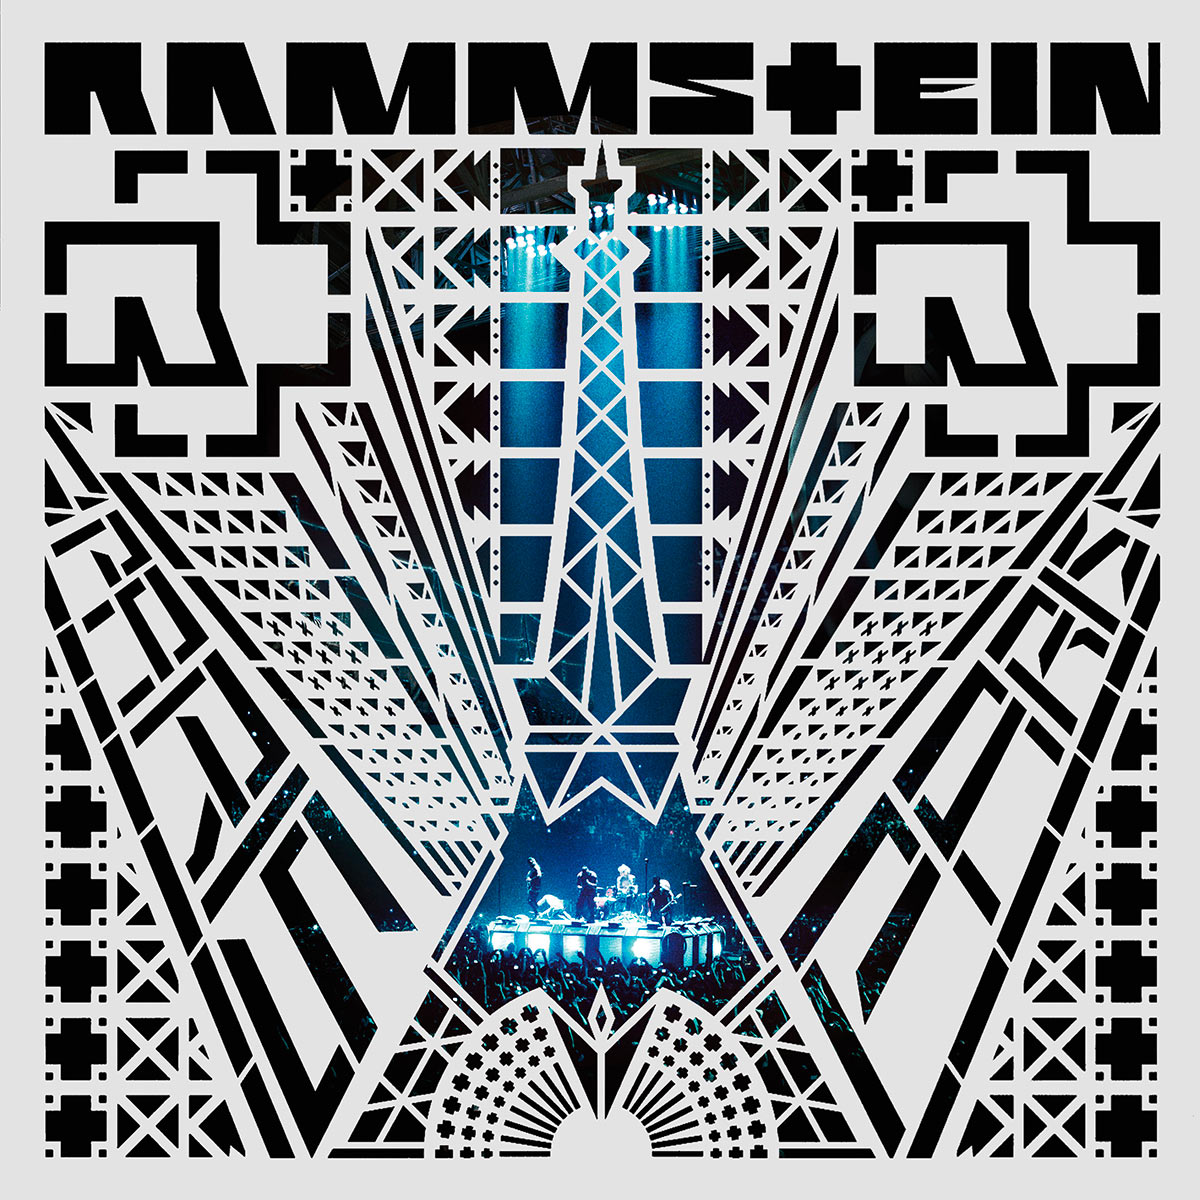 Rammstein World - Live album Rammstein: Paris